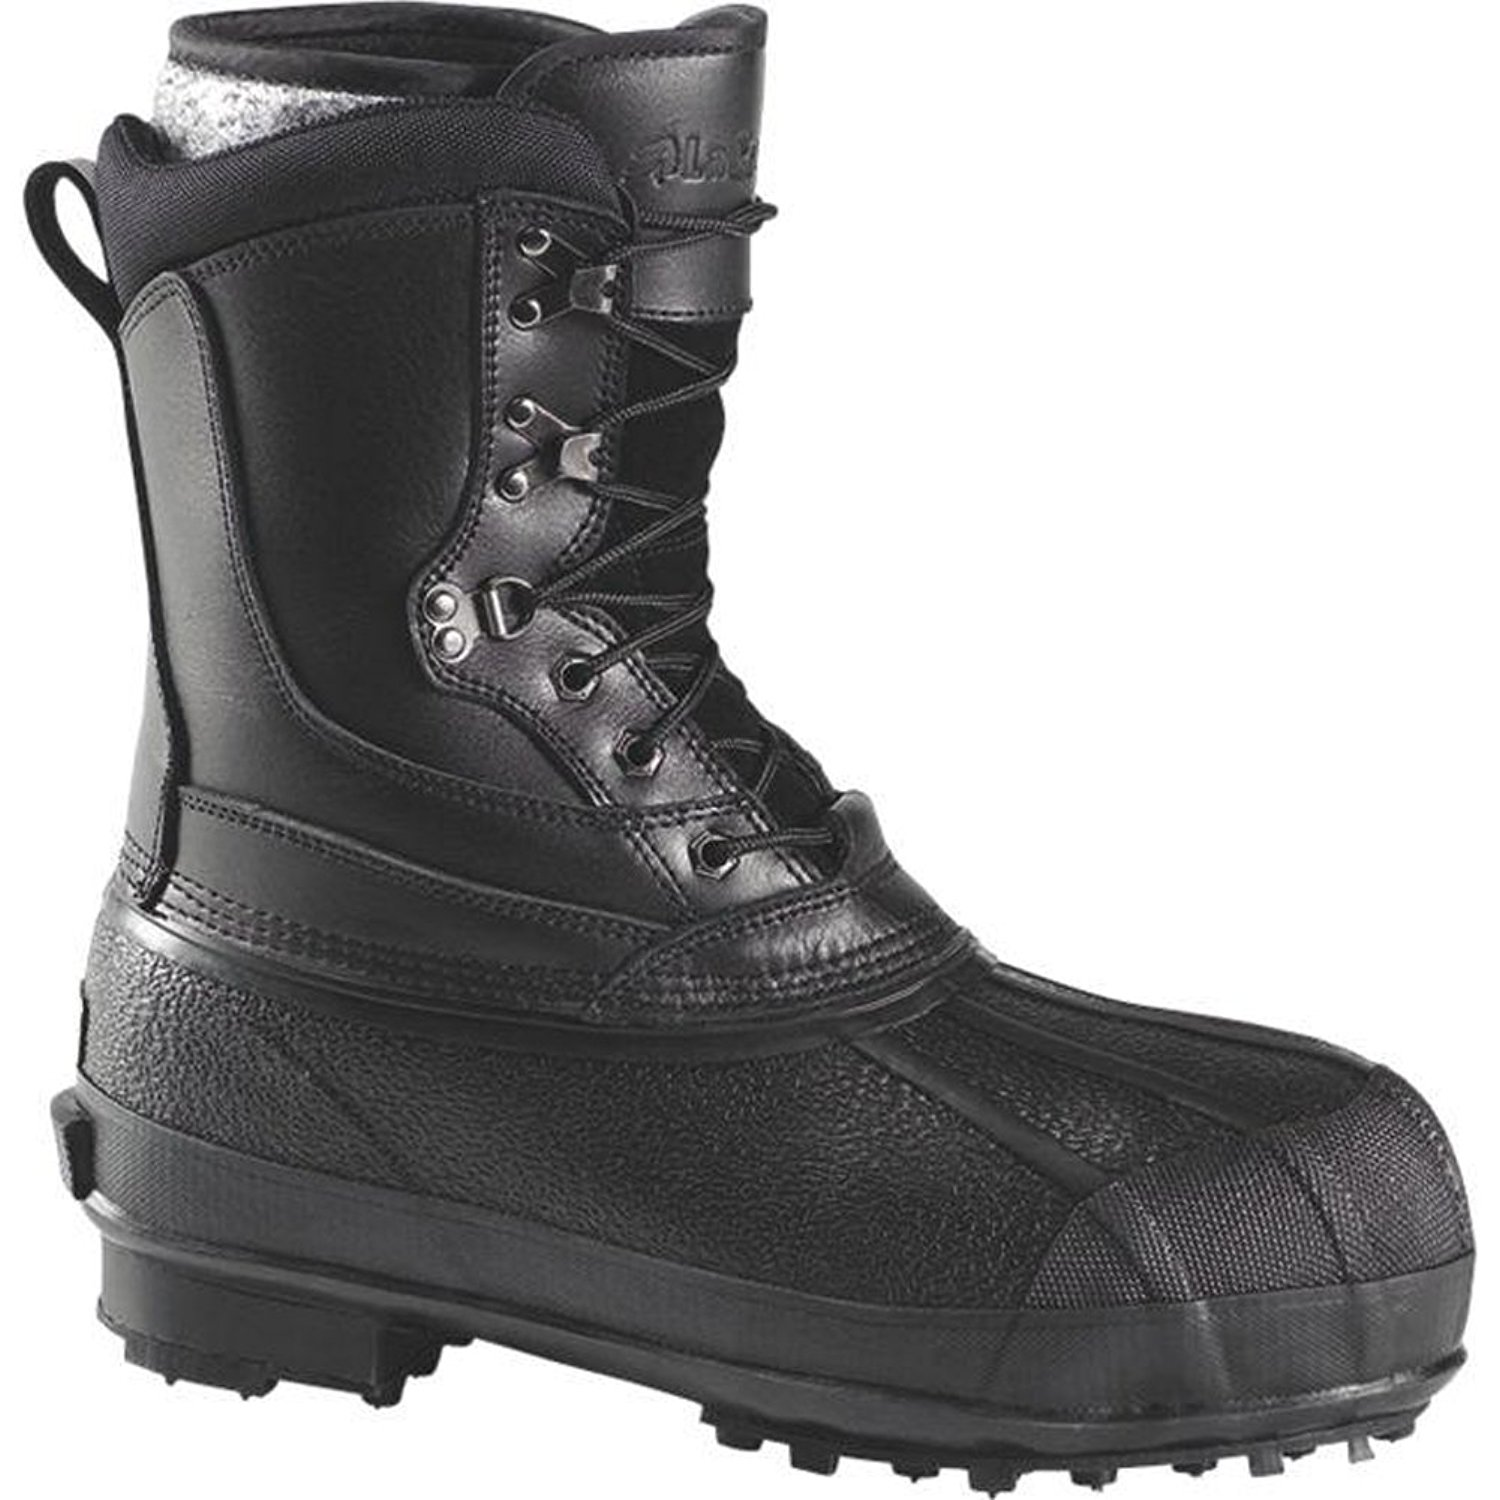 brand new 0d42b c3f44 Cheap Gram Boots, find Gram Boots deals on line at Alibaba.com